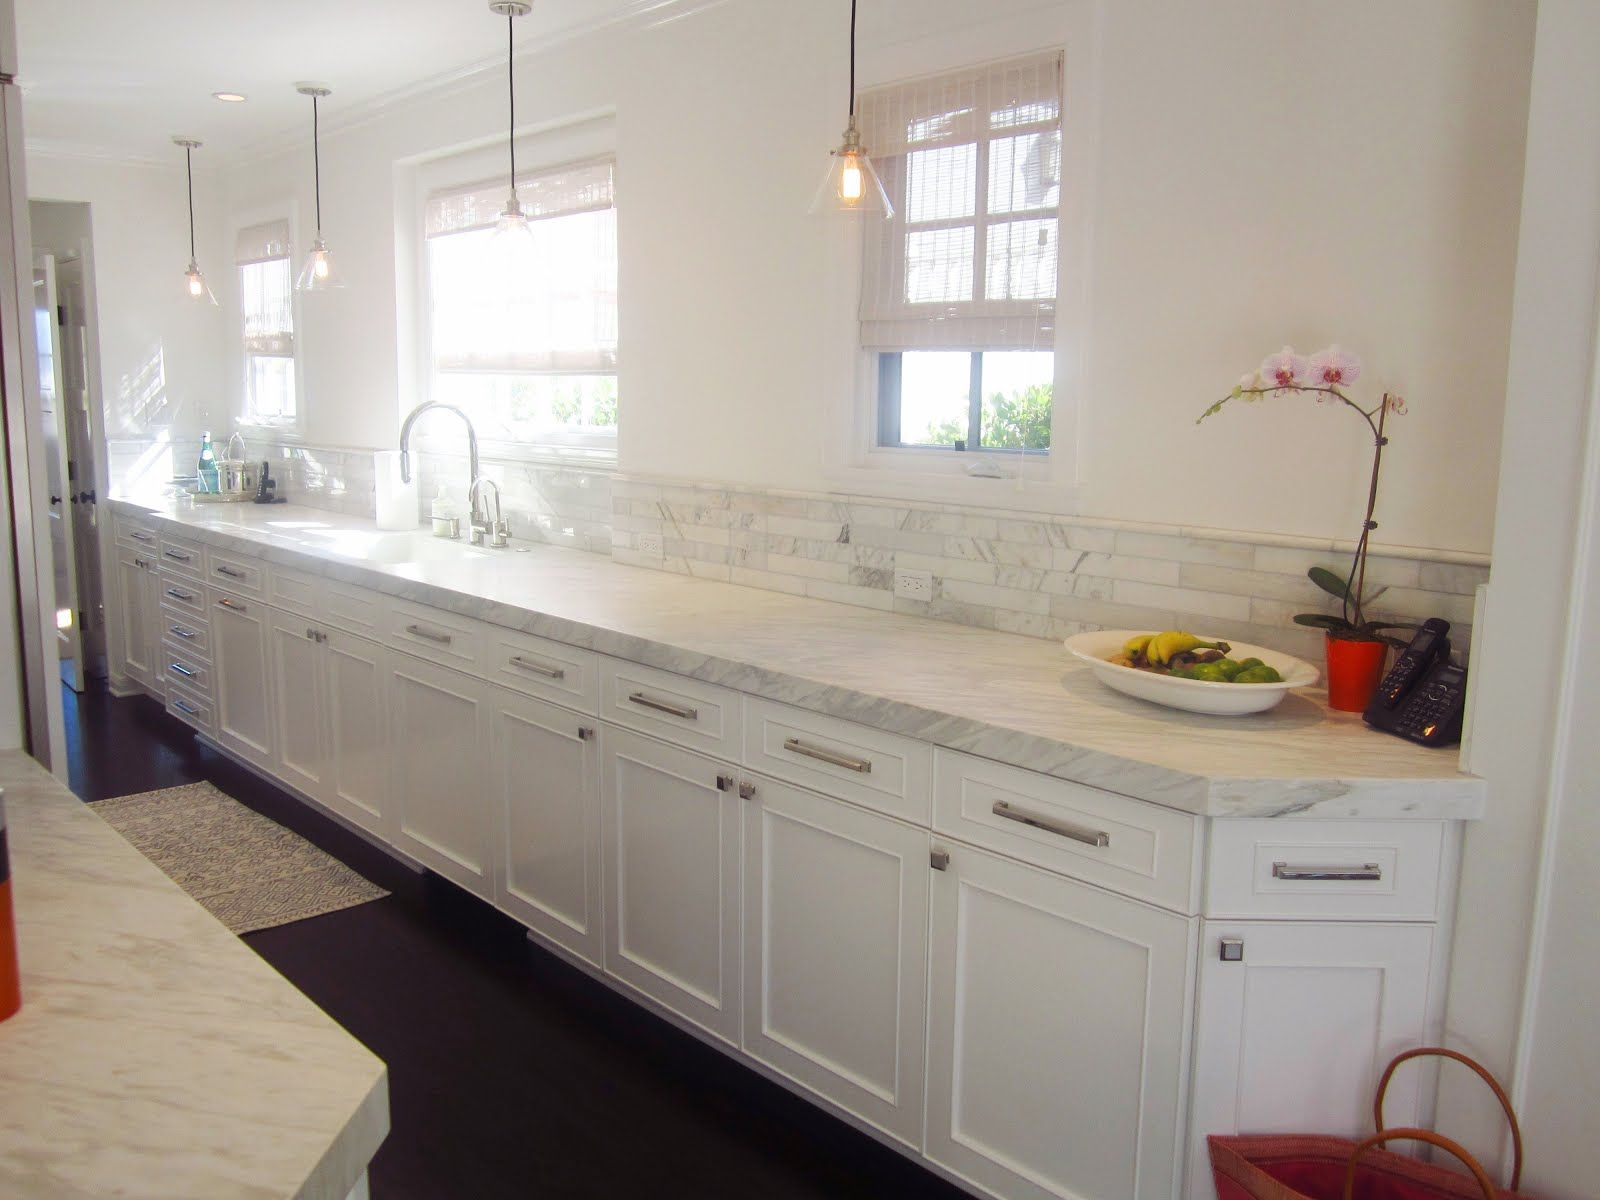 galley kitchen lighting ideas. EXCLUSIVE A CHIC GALLEY KITCHEN Galley Kitchen Lighting Ideas